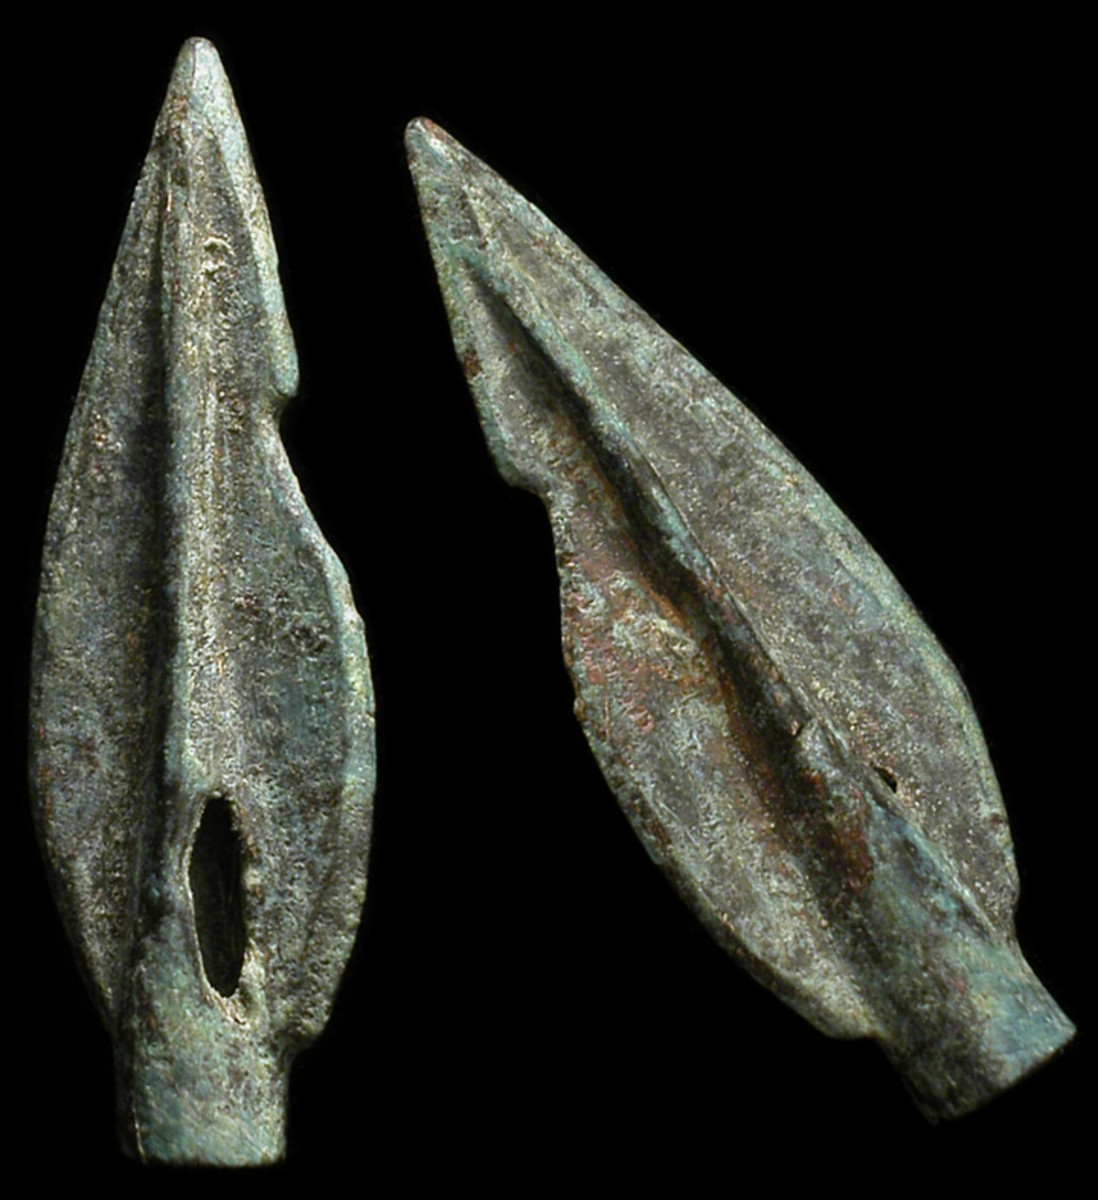 The spear was held one handed, either over or underhand, perhaps depending on the situation, while the other arm was used to hold up the shield. At the business end there was a bronze or iron curved leaf shaped spearhead with a long, cylindrical sock